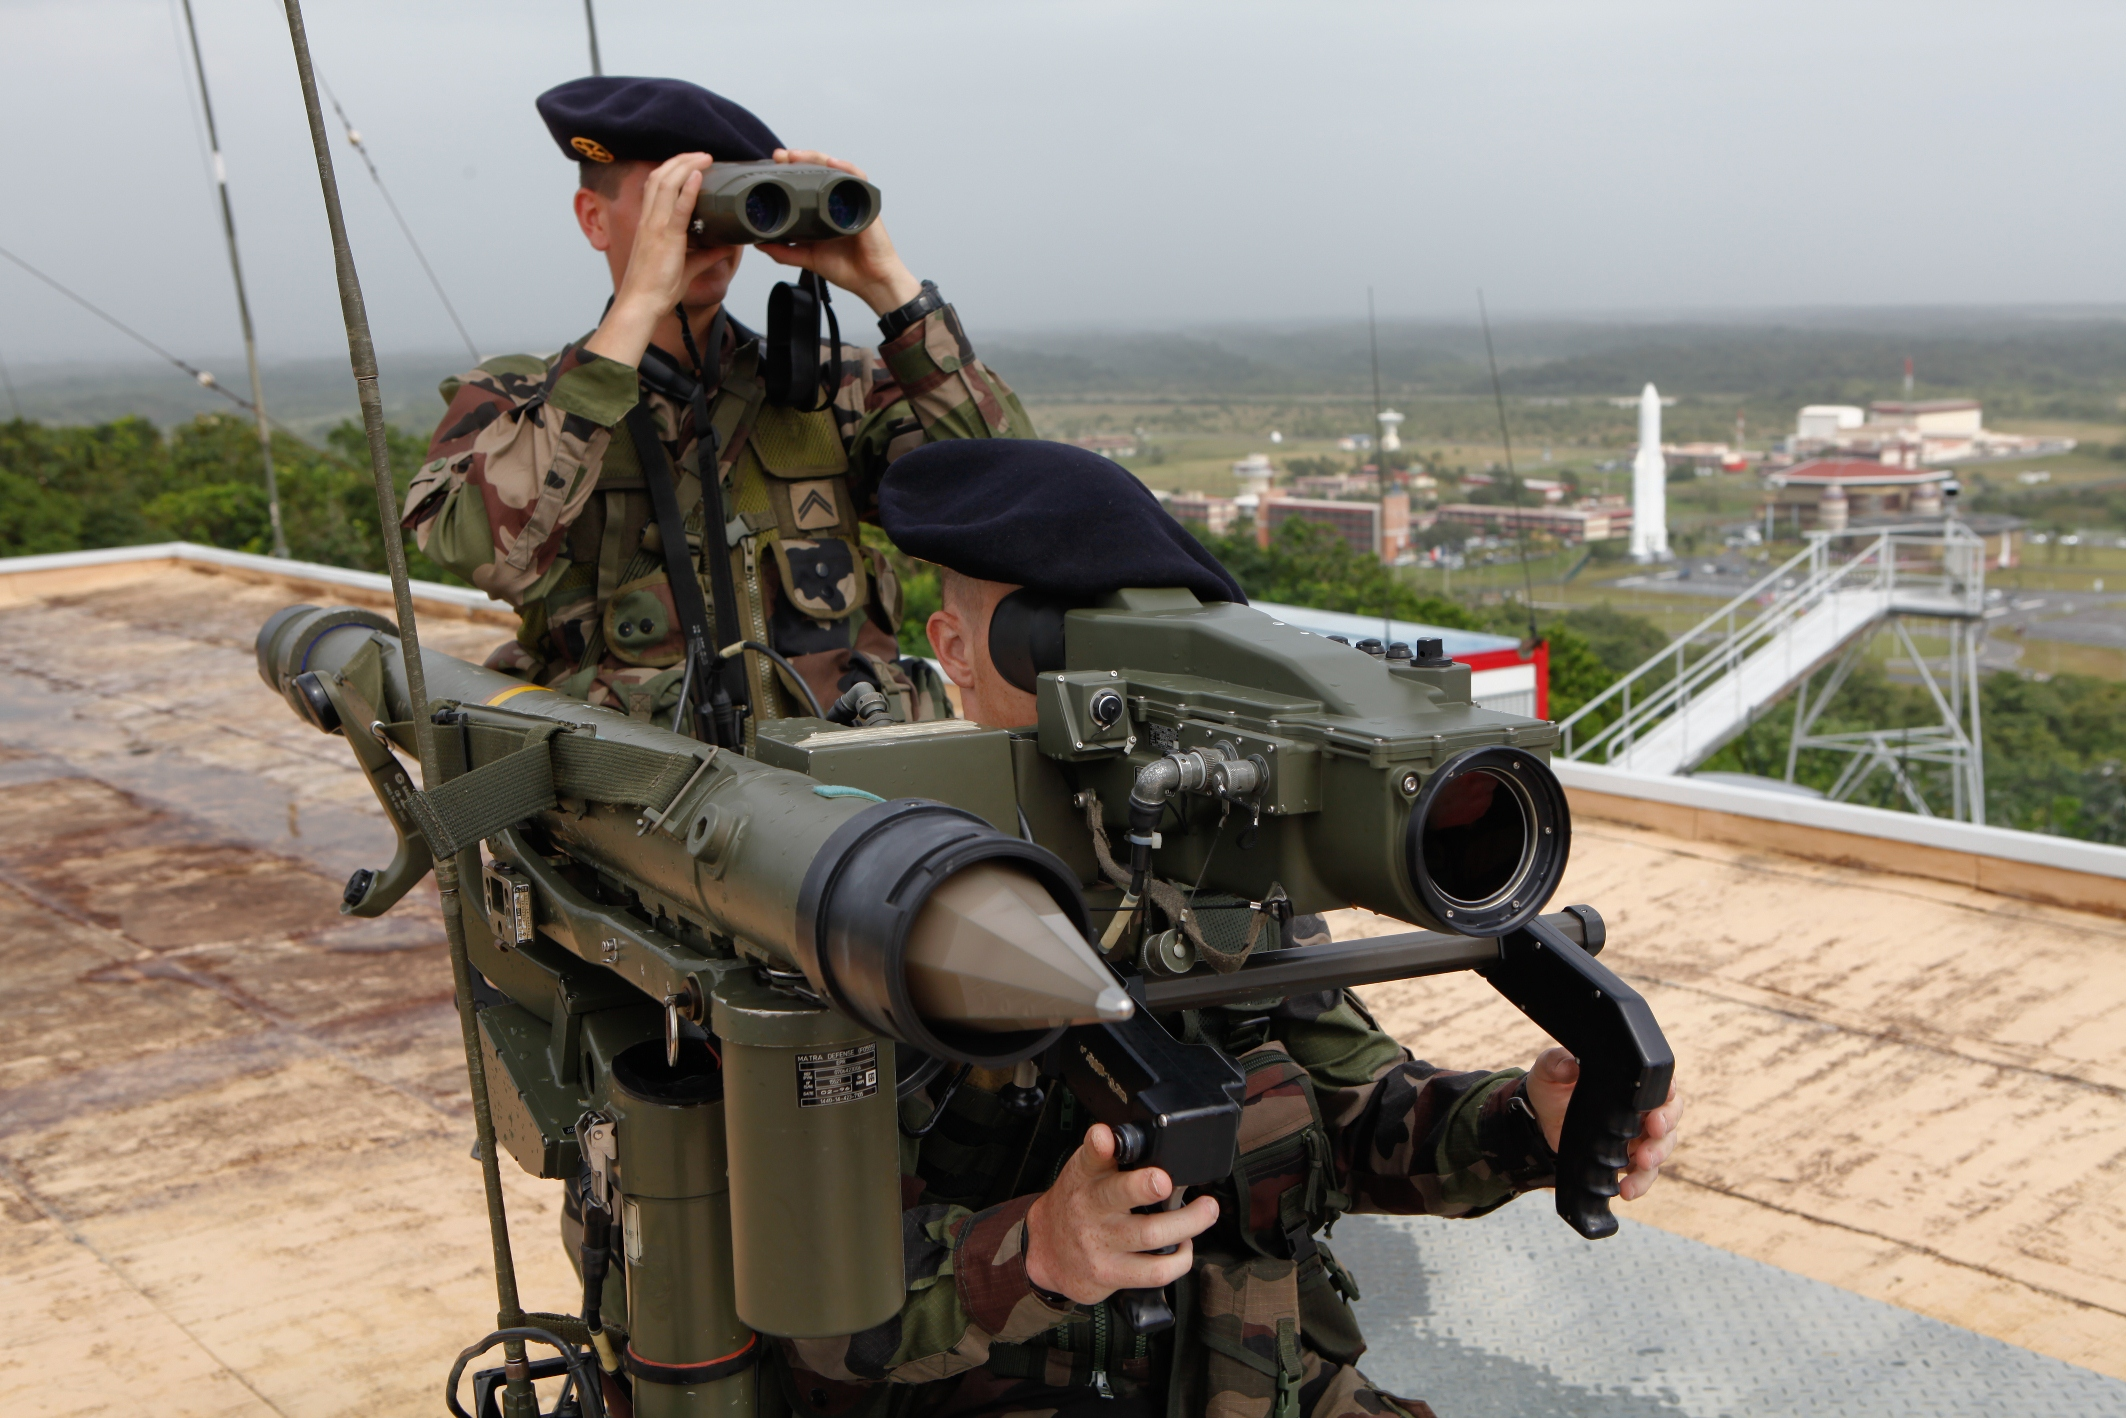 French Forces using MISTRAL MANPADS in Guyana